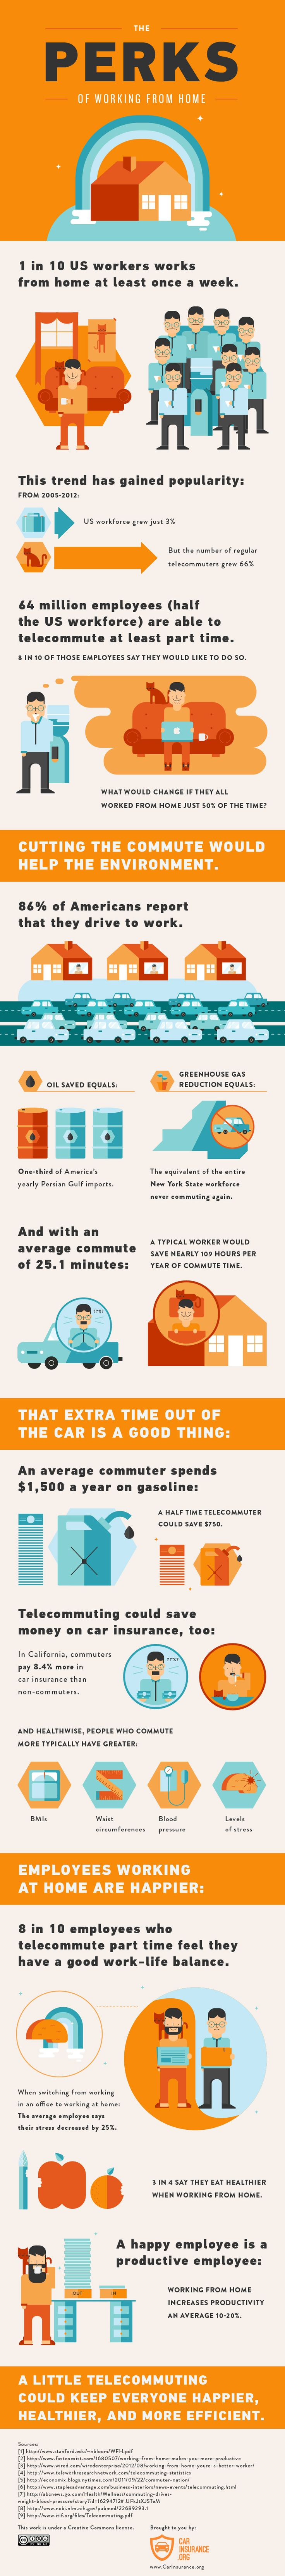 Why telecommuting is healthier than driving to work